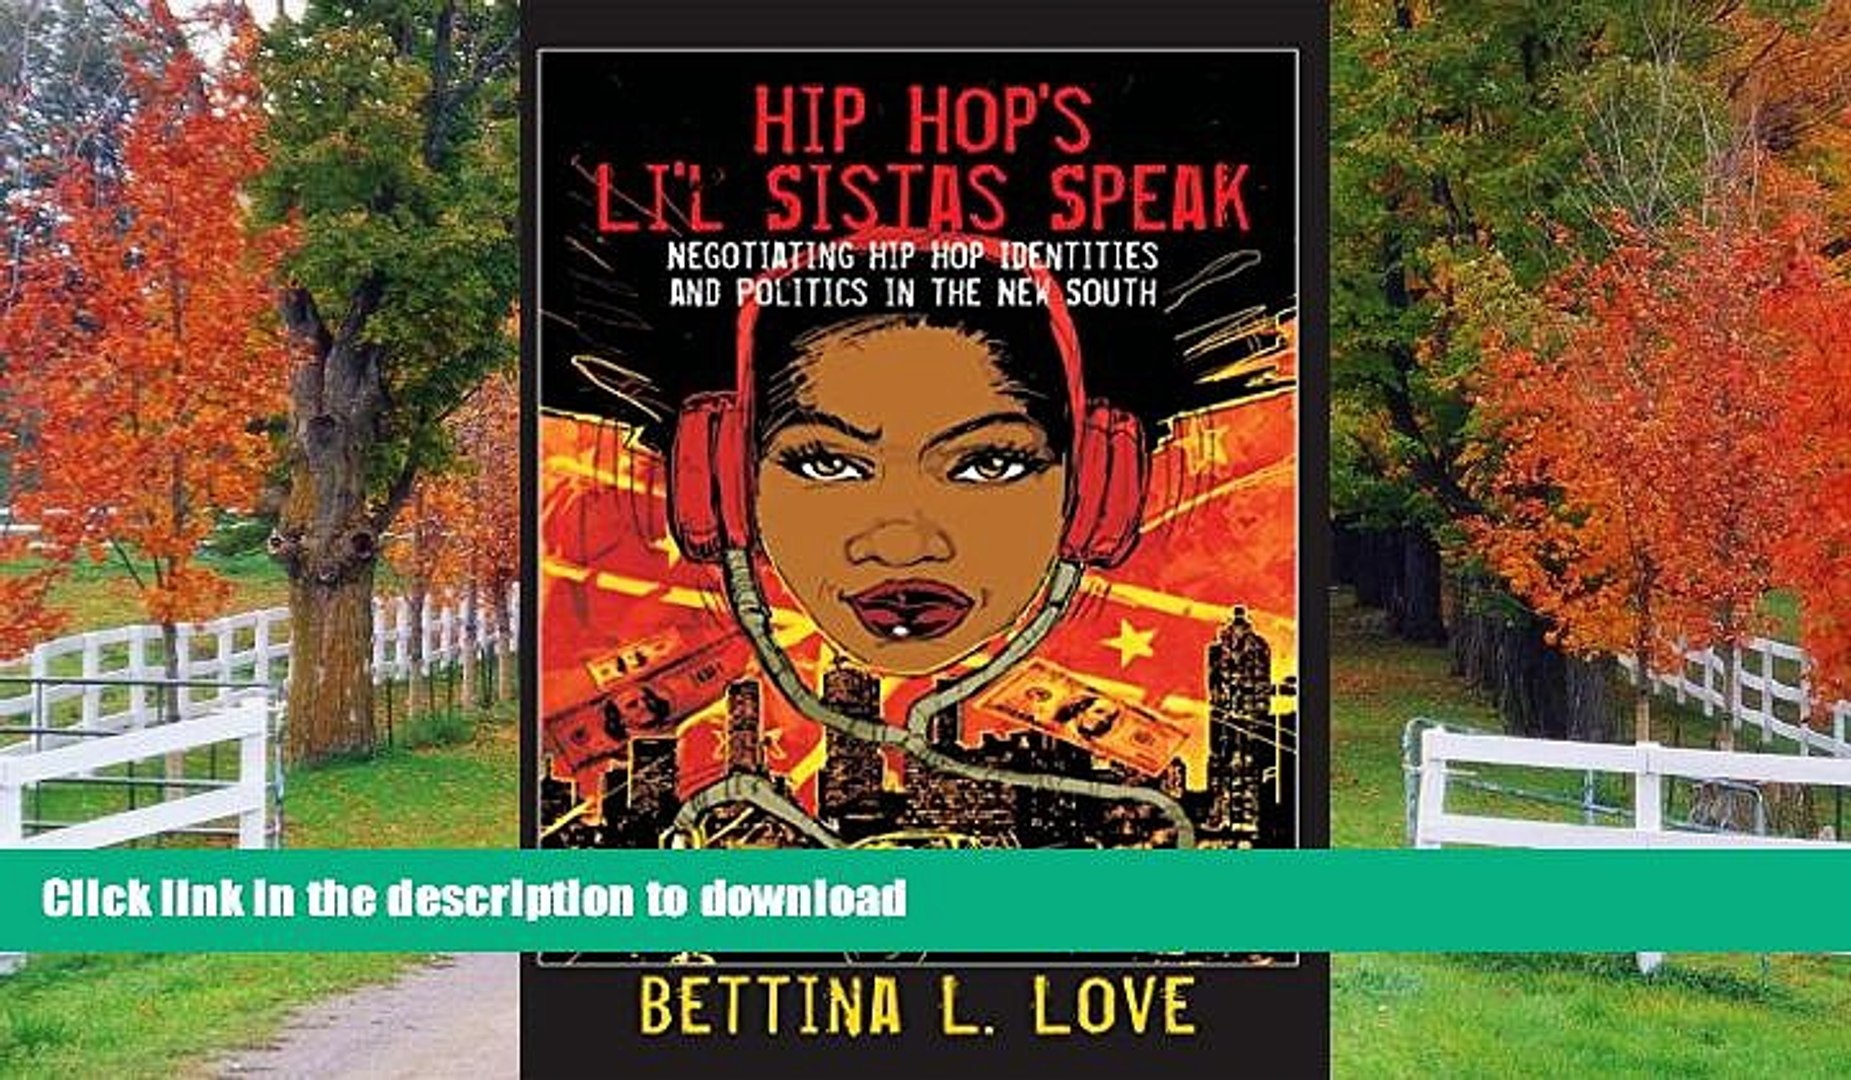 READ Hip Hop s Li l Sistas Speak: Negotiating Hip Hop Identities and Politics in the New South